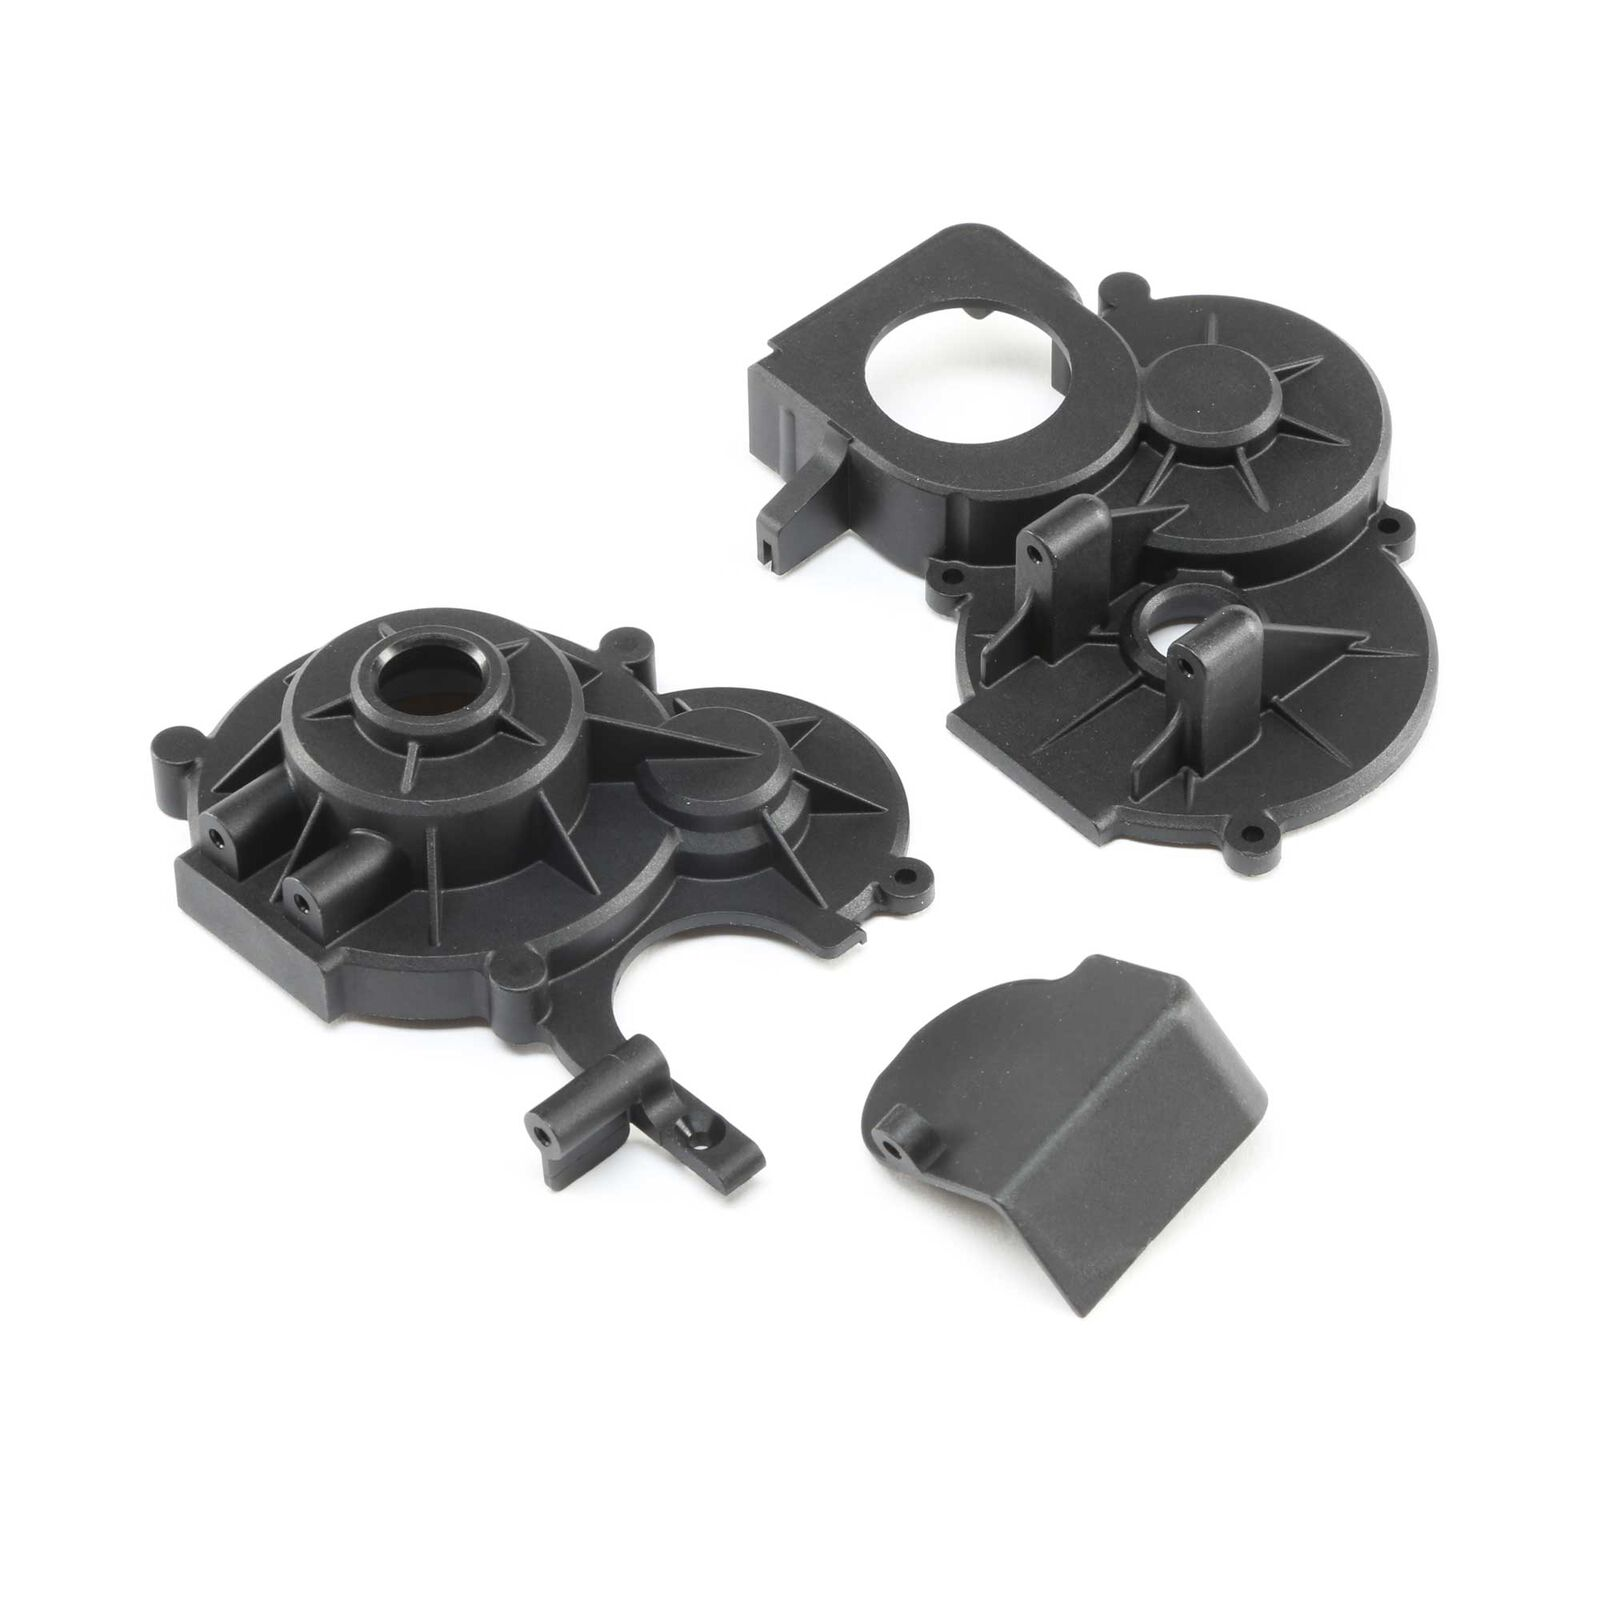 Transmission Case Set and Gear Cover: LST 3XL-E